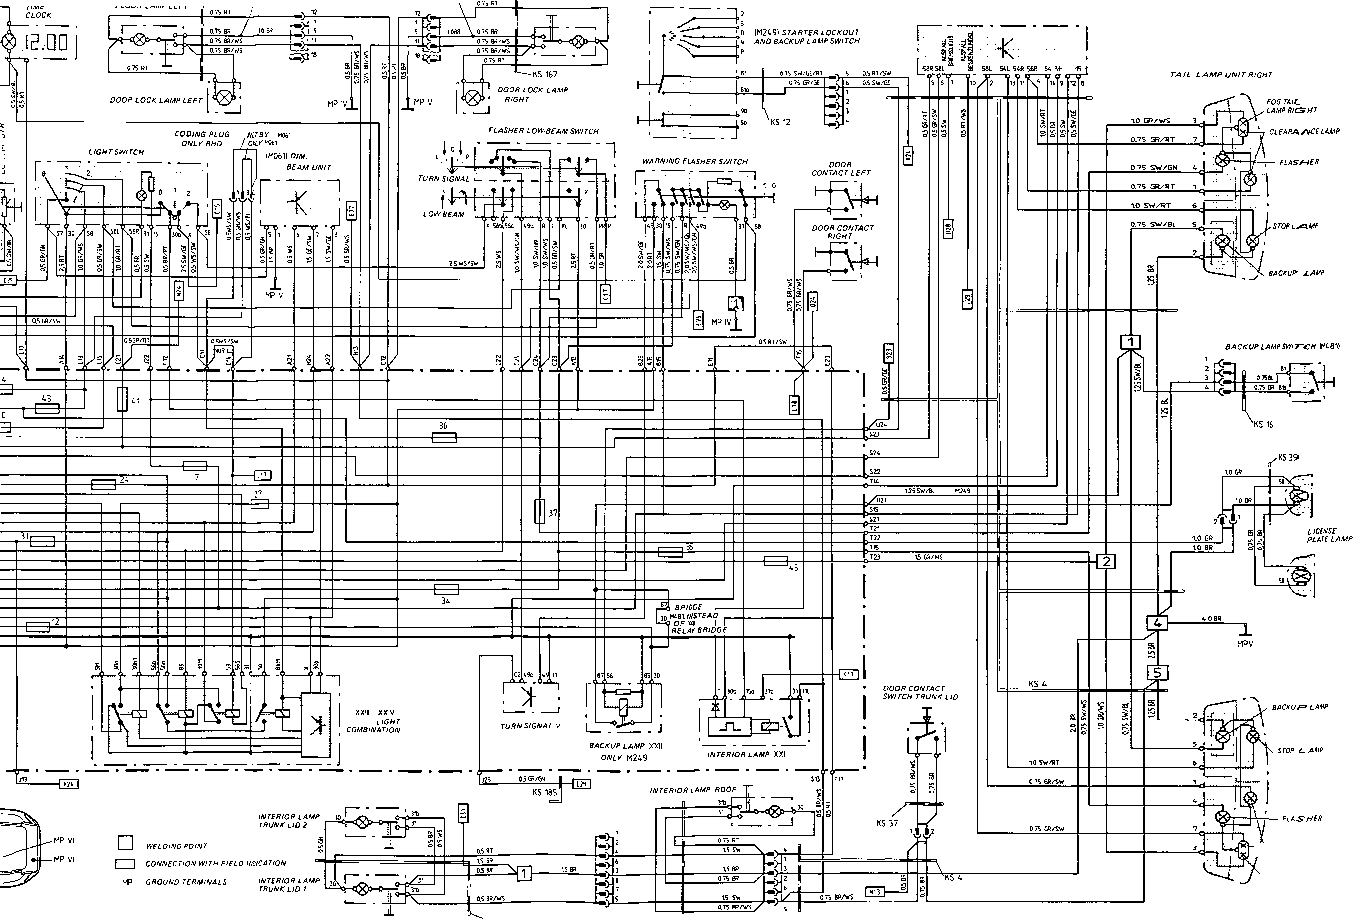 Wiring Diagram Type 928 S Model 8 page - Porsche Wire Diagram